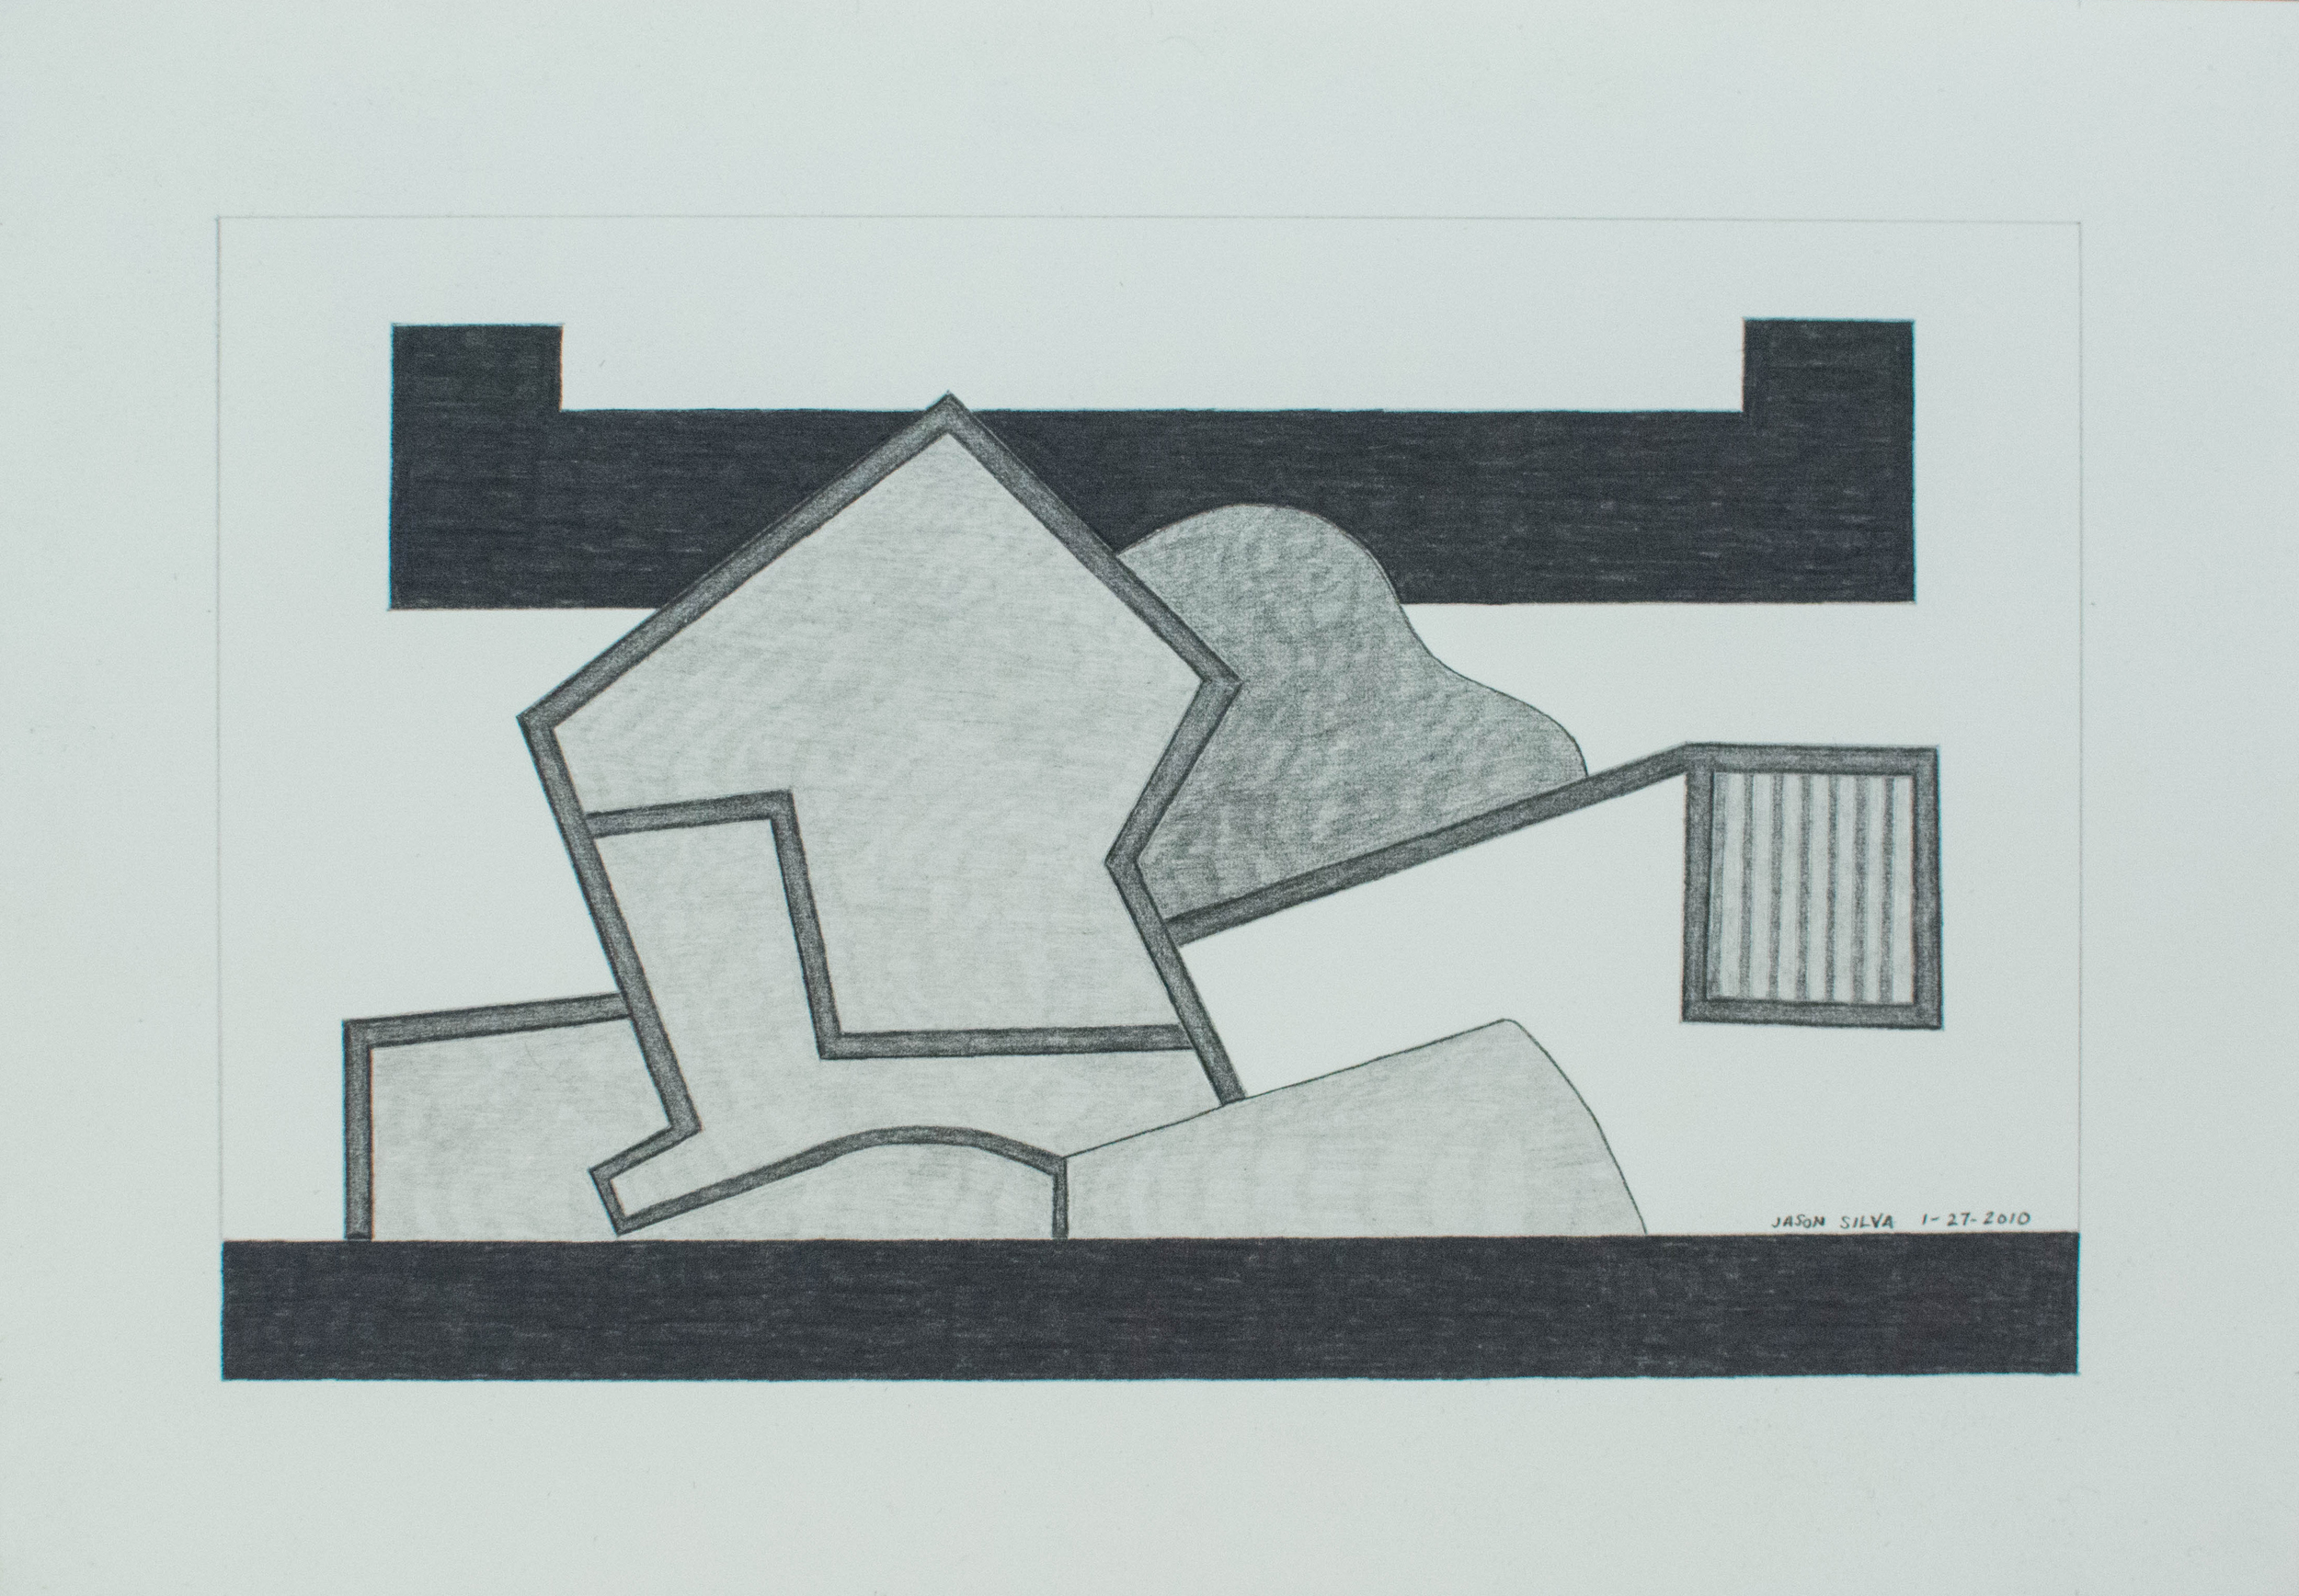 1-27-10, 2010, Graphite on paper, 7 x 10 inches